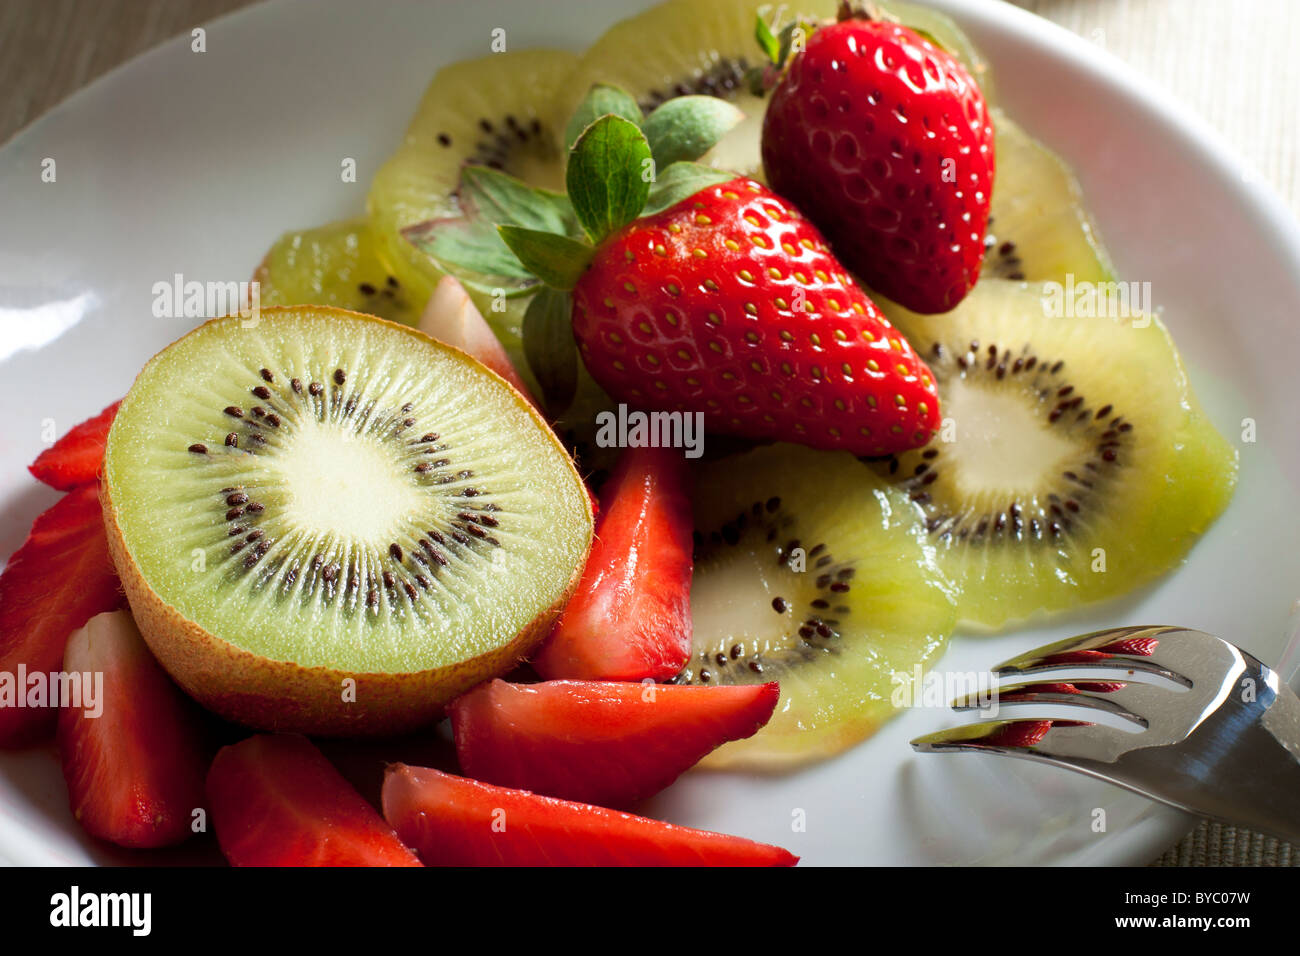 Kiwi and Strawberries Stock Photo